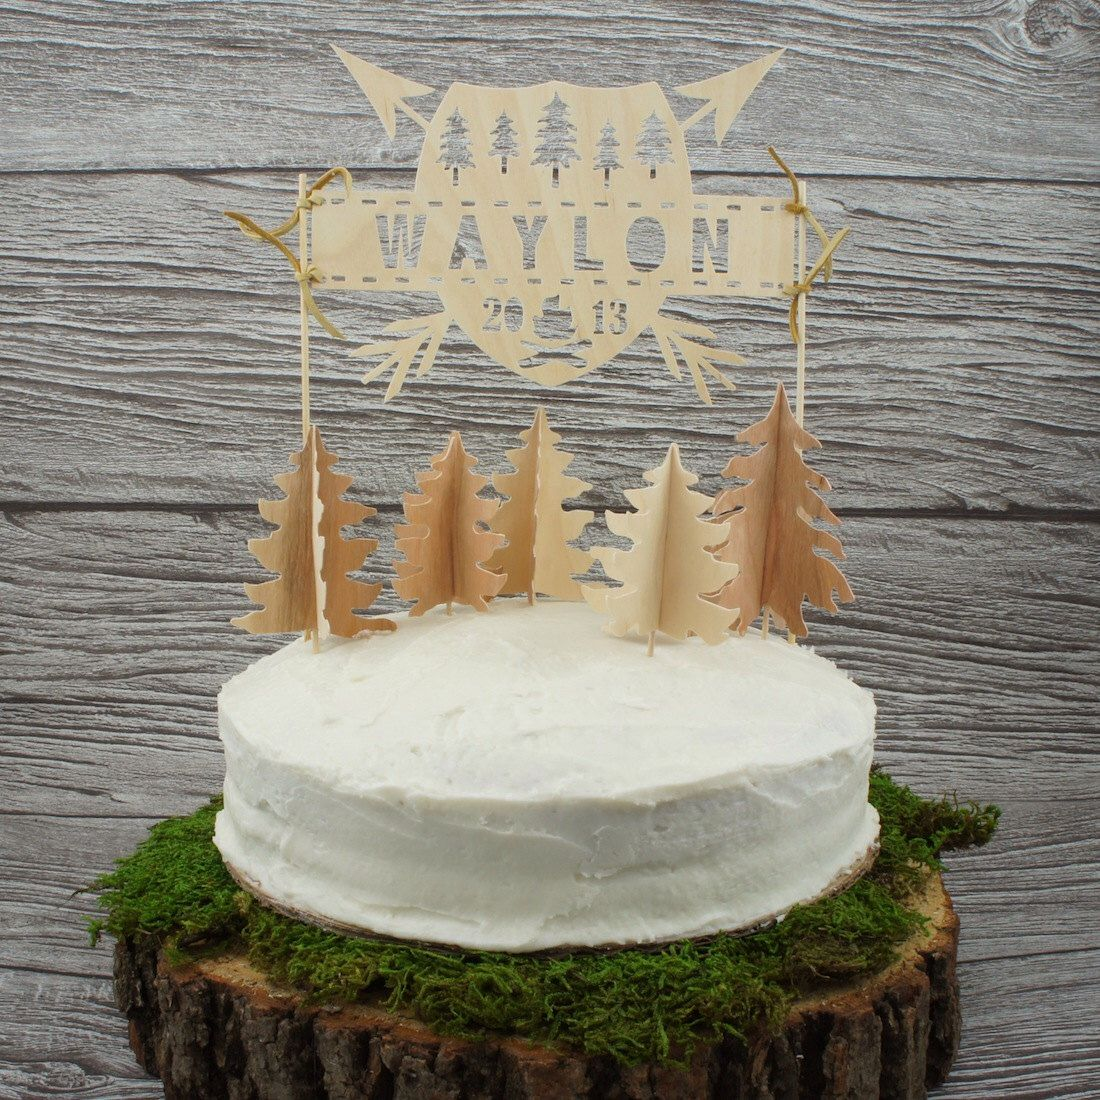 Personalized Wilderness Cake Topper by WonderfulCollective on Etsy https://www.etsy.com/listing/164842551/personalized-wilderness-cake-topper